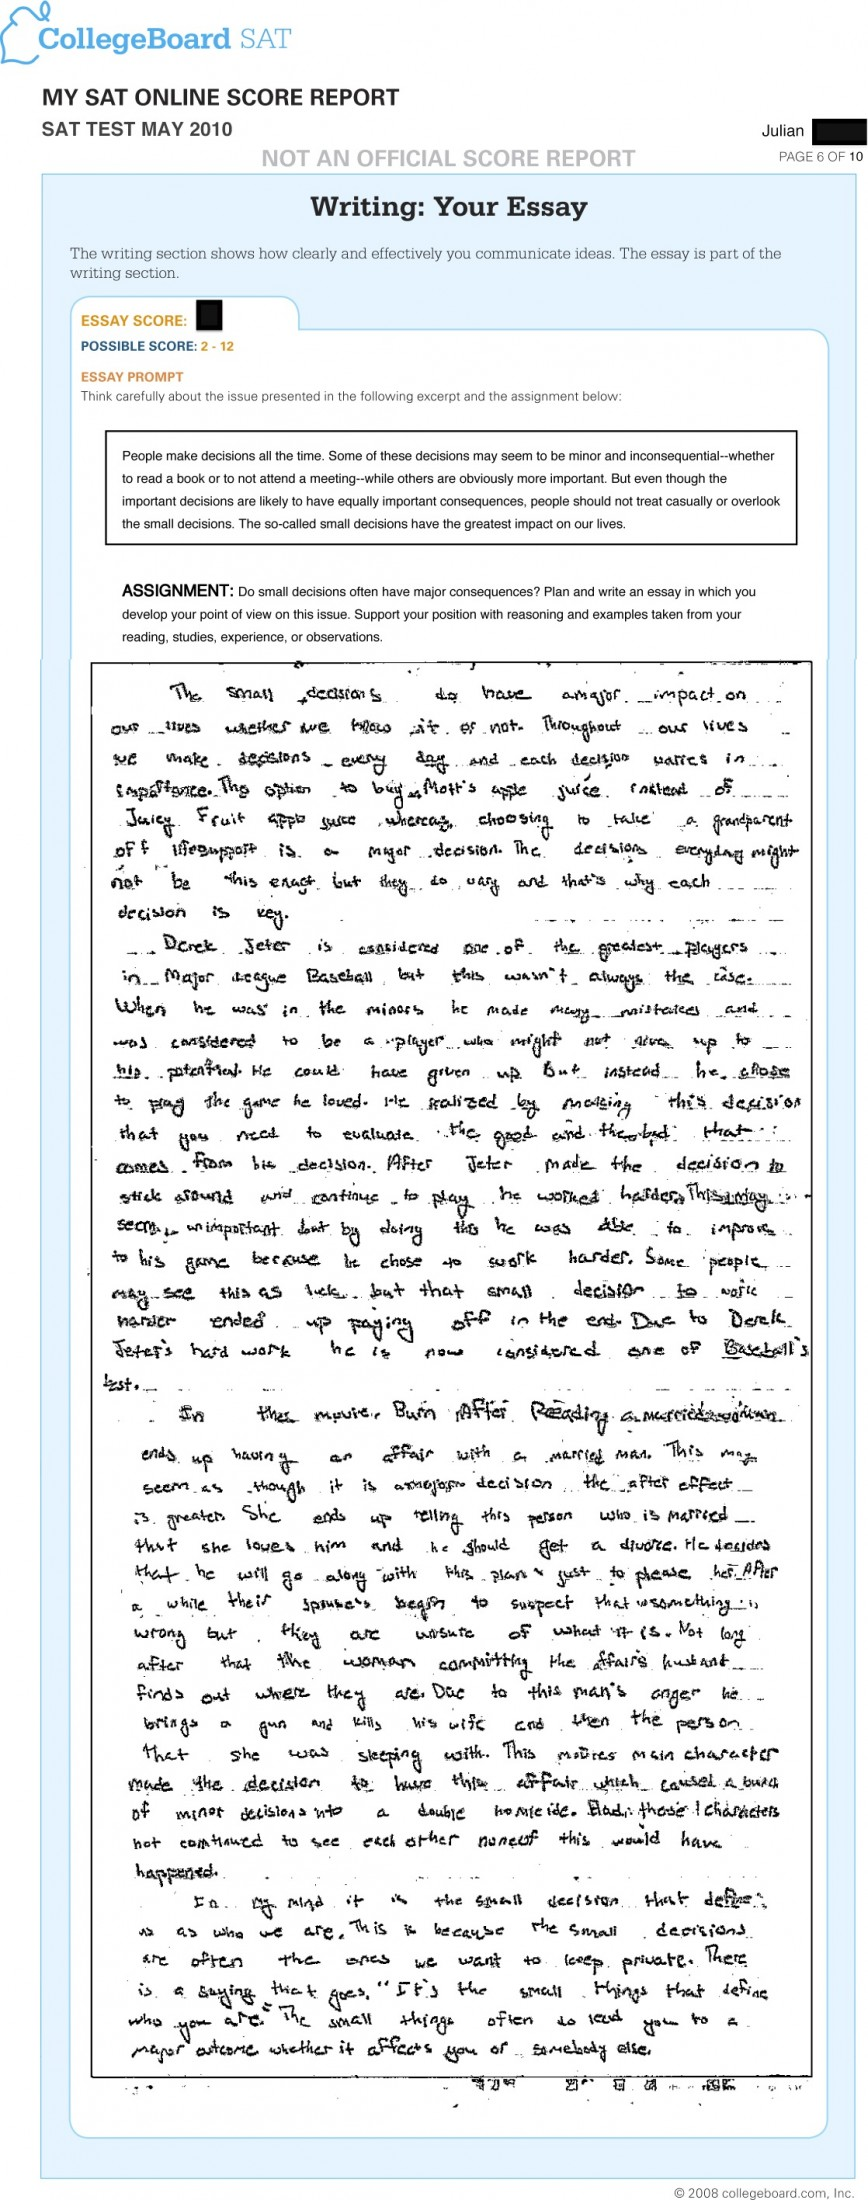 006 How To Write An Sat Essay Example Jr May Remarkable Excellent Faster 2018